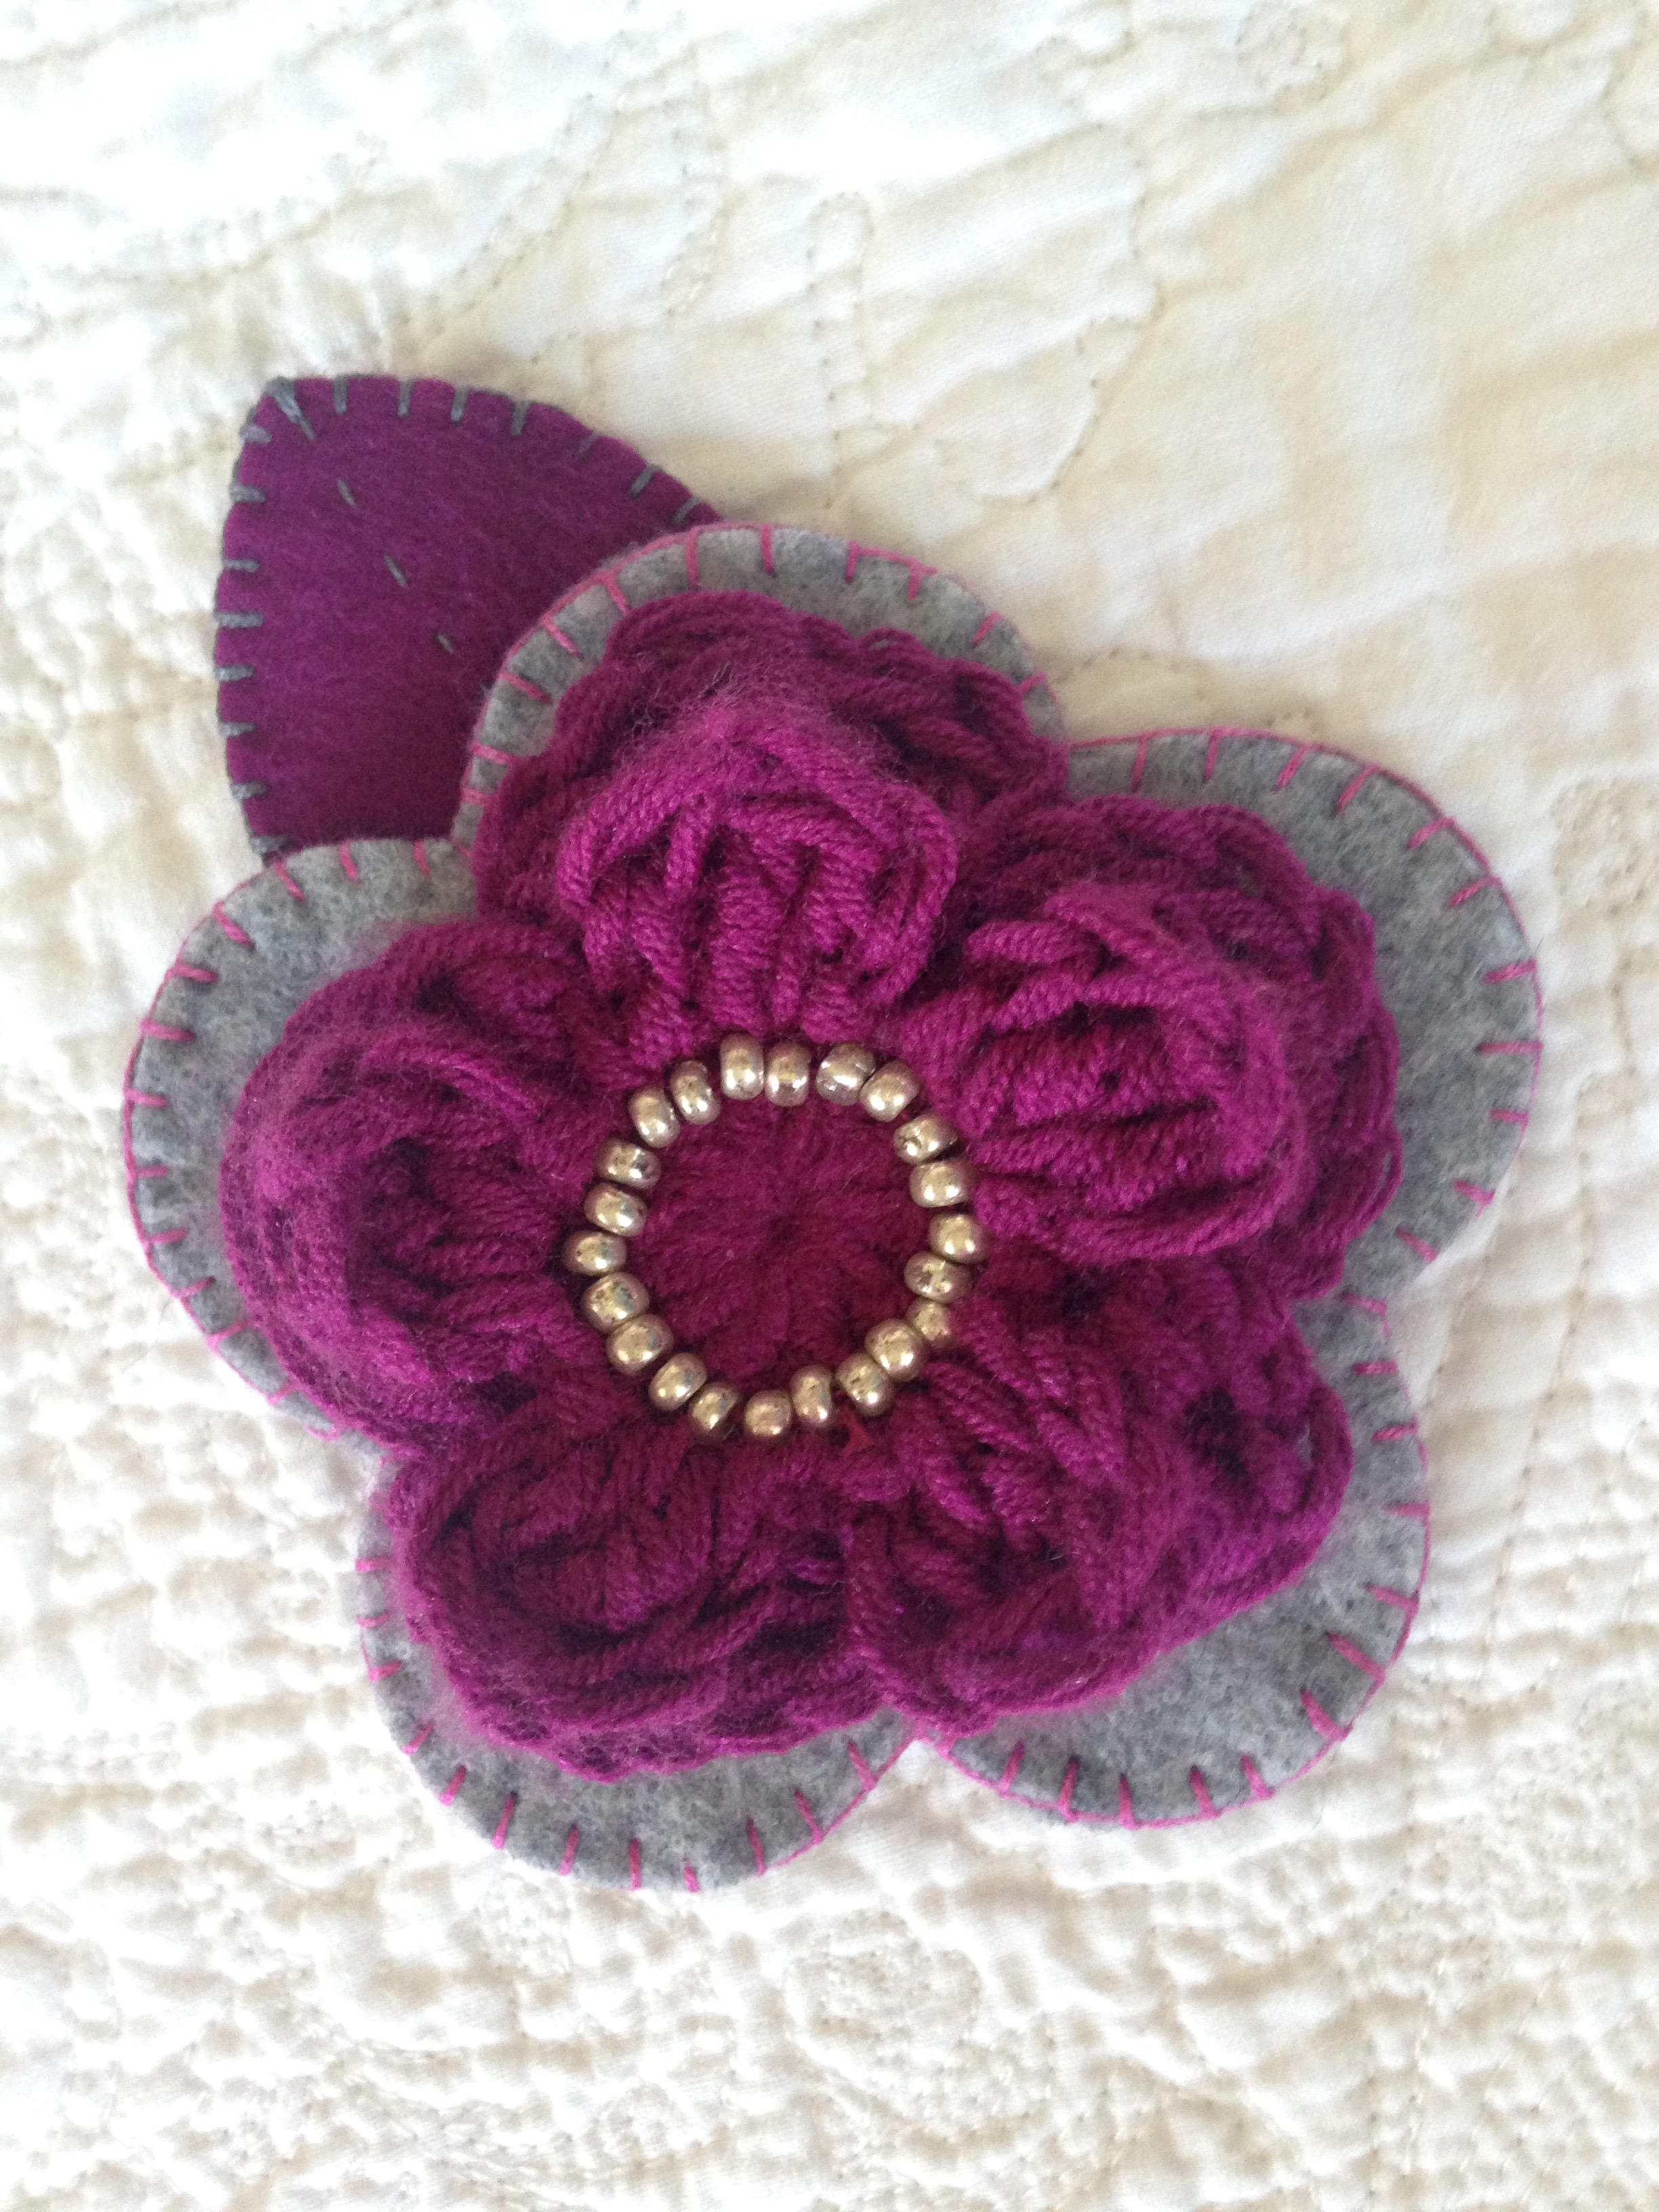 Hand sewn felt and beaded crocheted flower brooch.